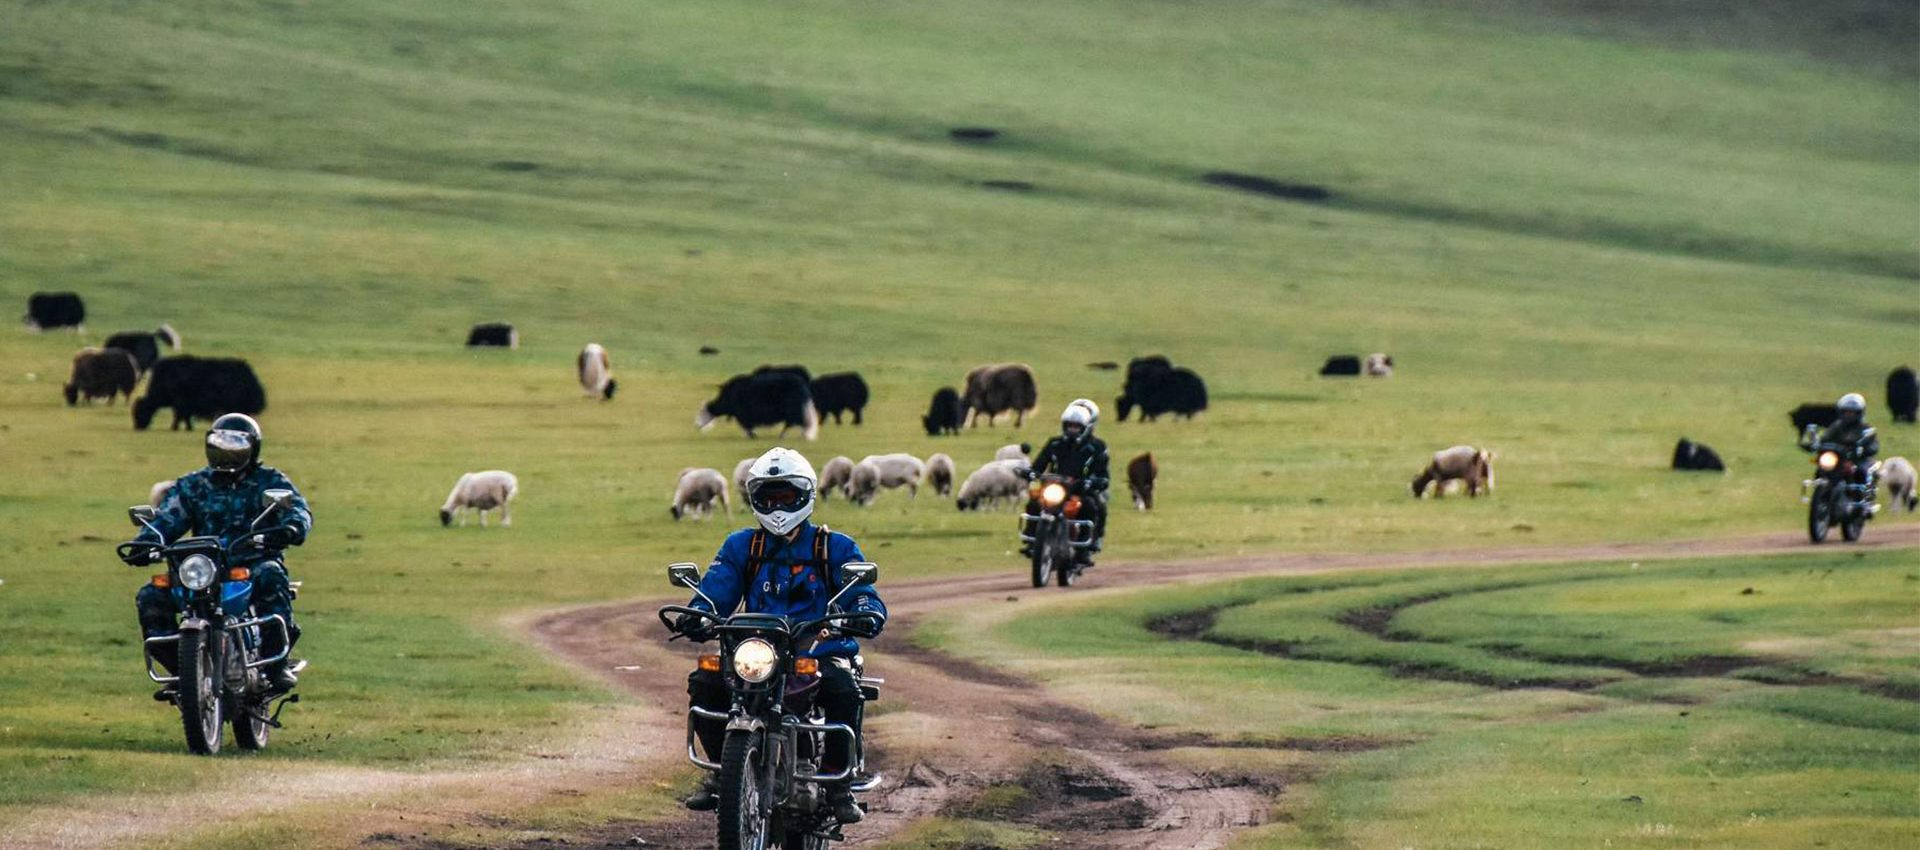 We will roam free on the greenlands of the wild Steppe.